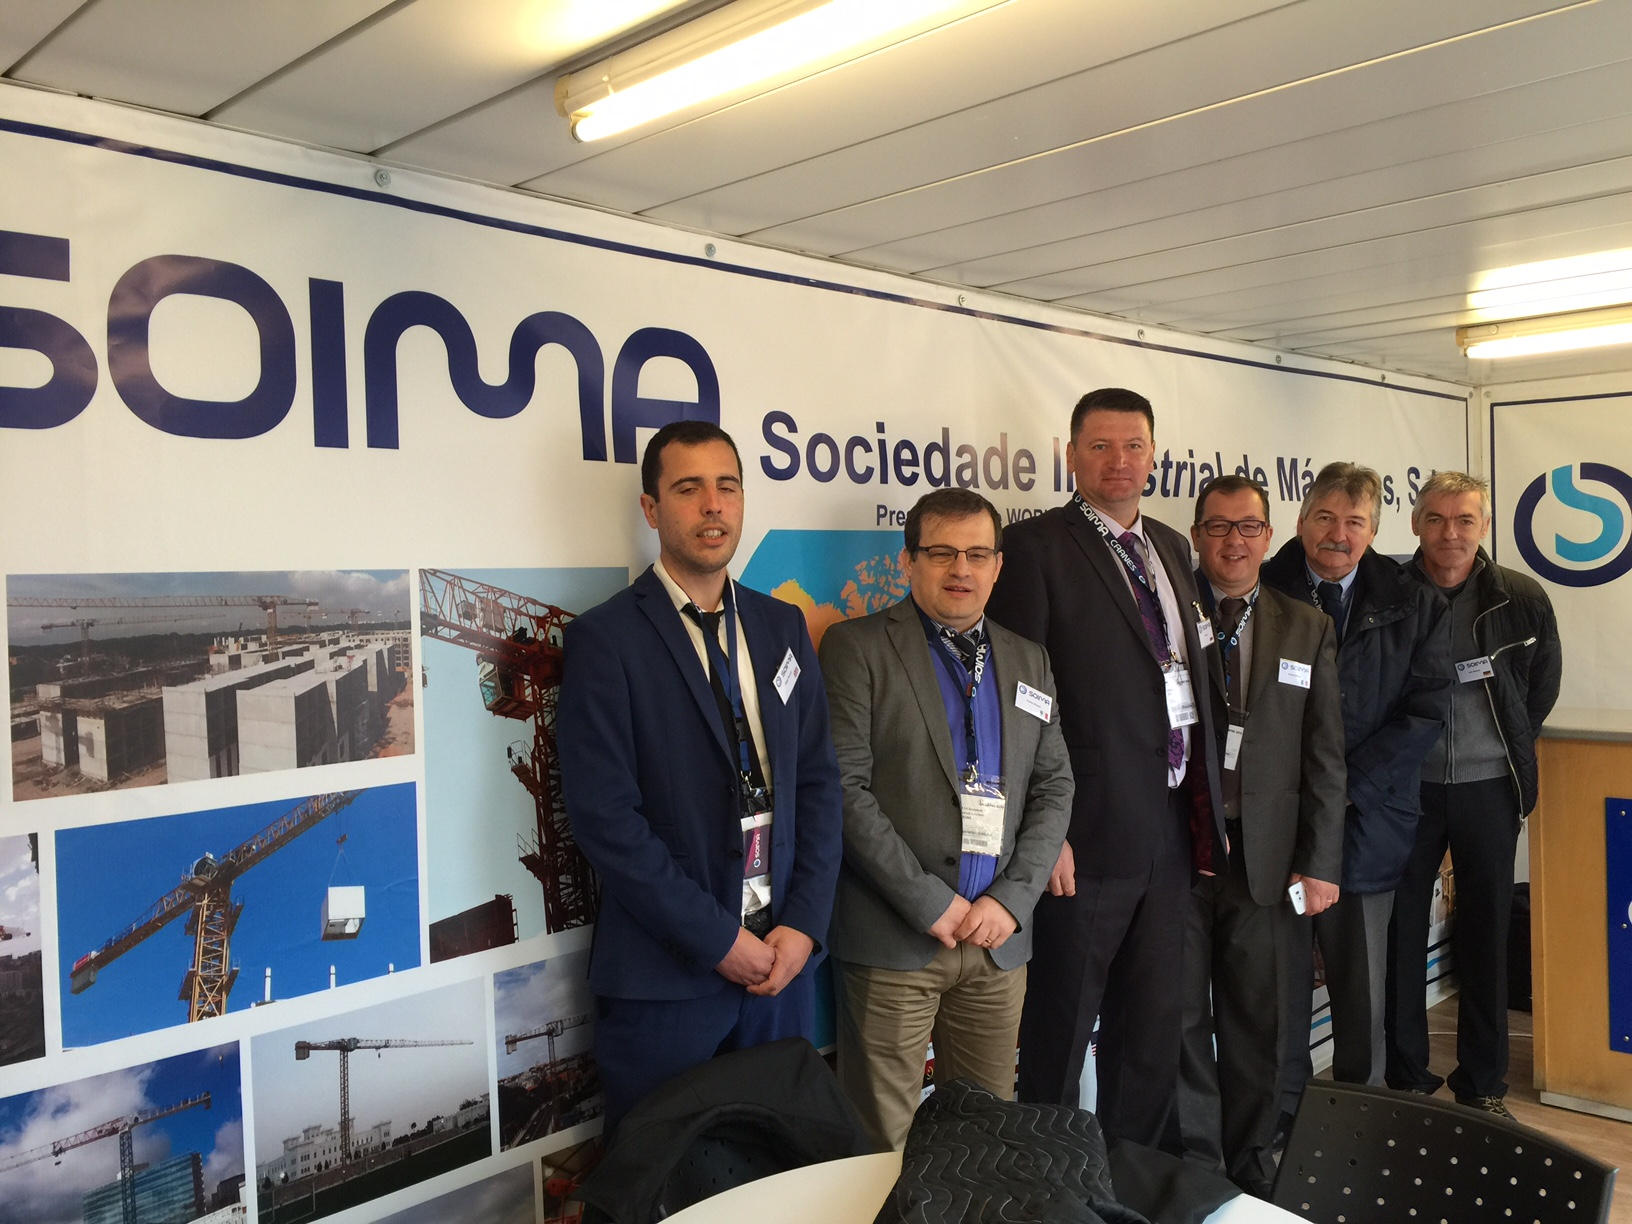 tower crane | soima | Bauma 201